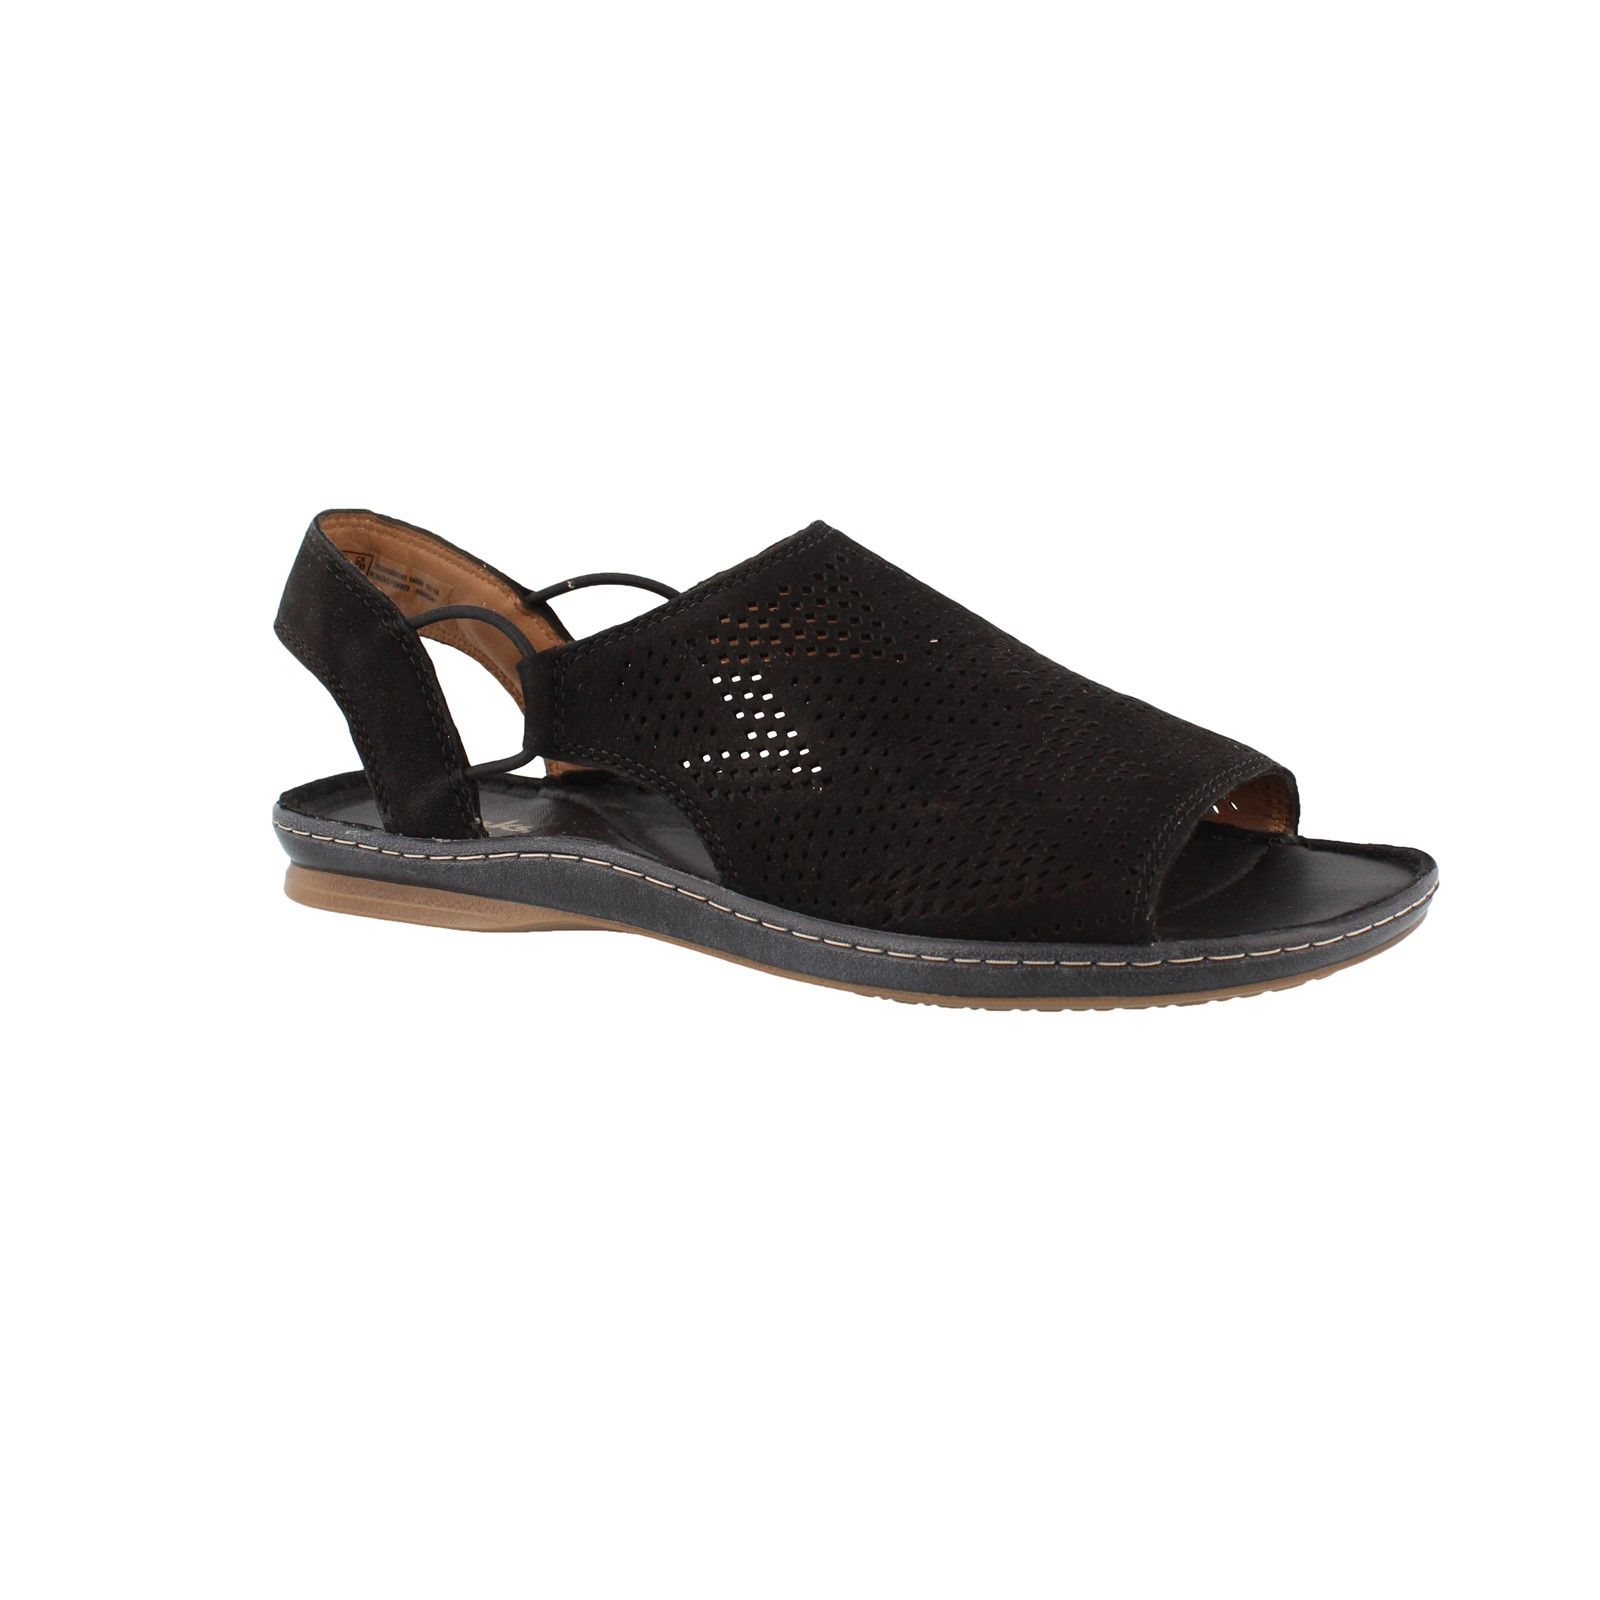 4417dea1852 Next. add to favorites. Women s Clarks